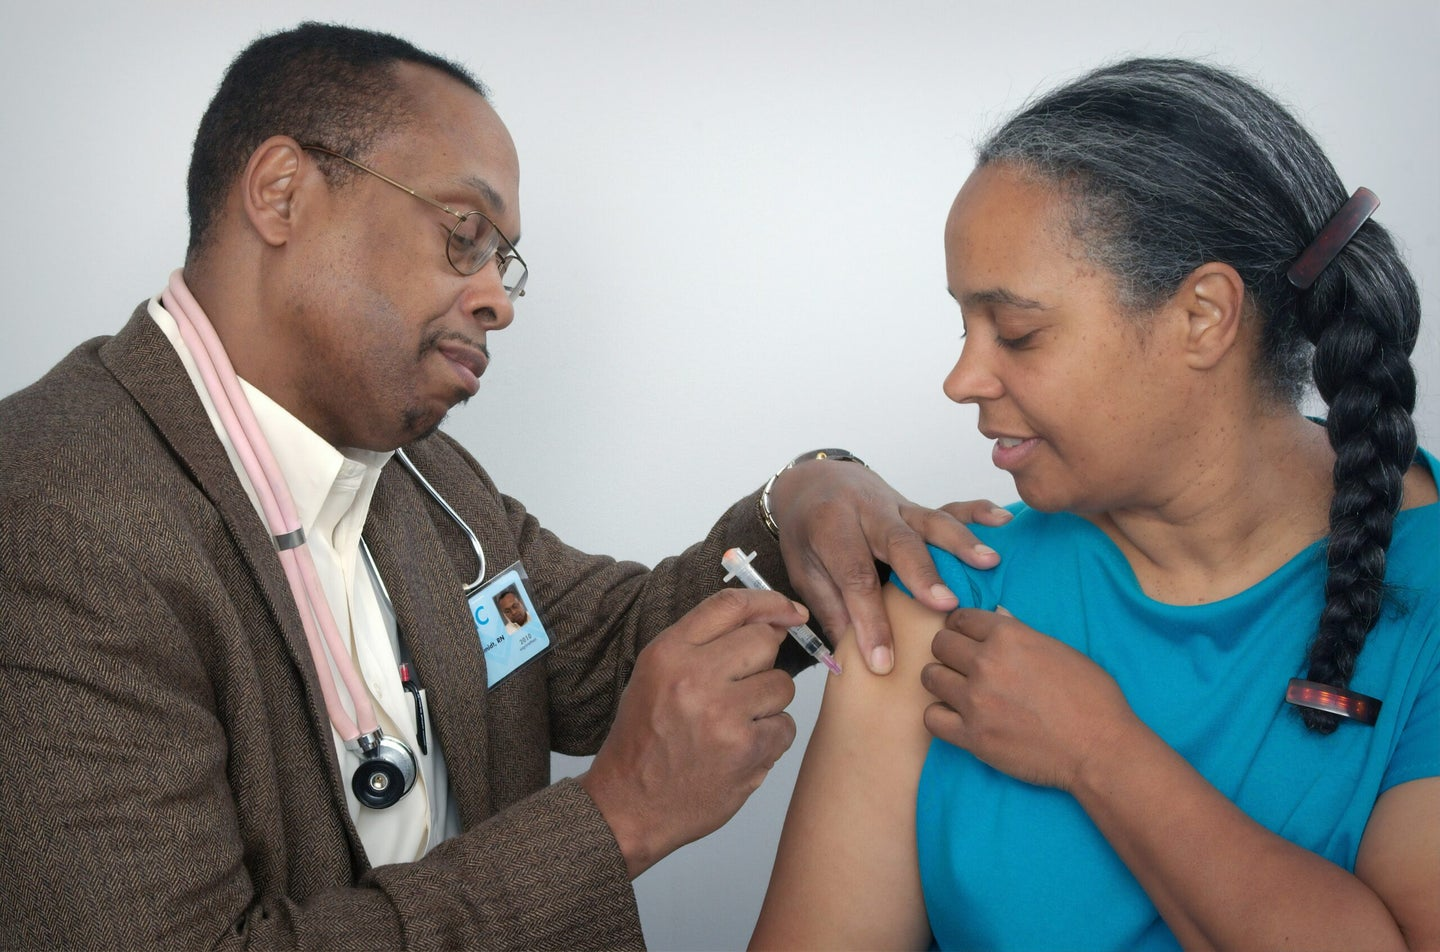 person receiving a vaccine